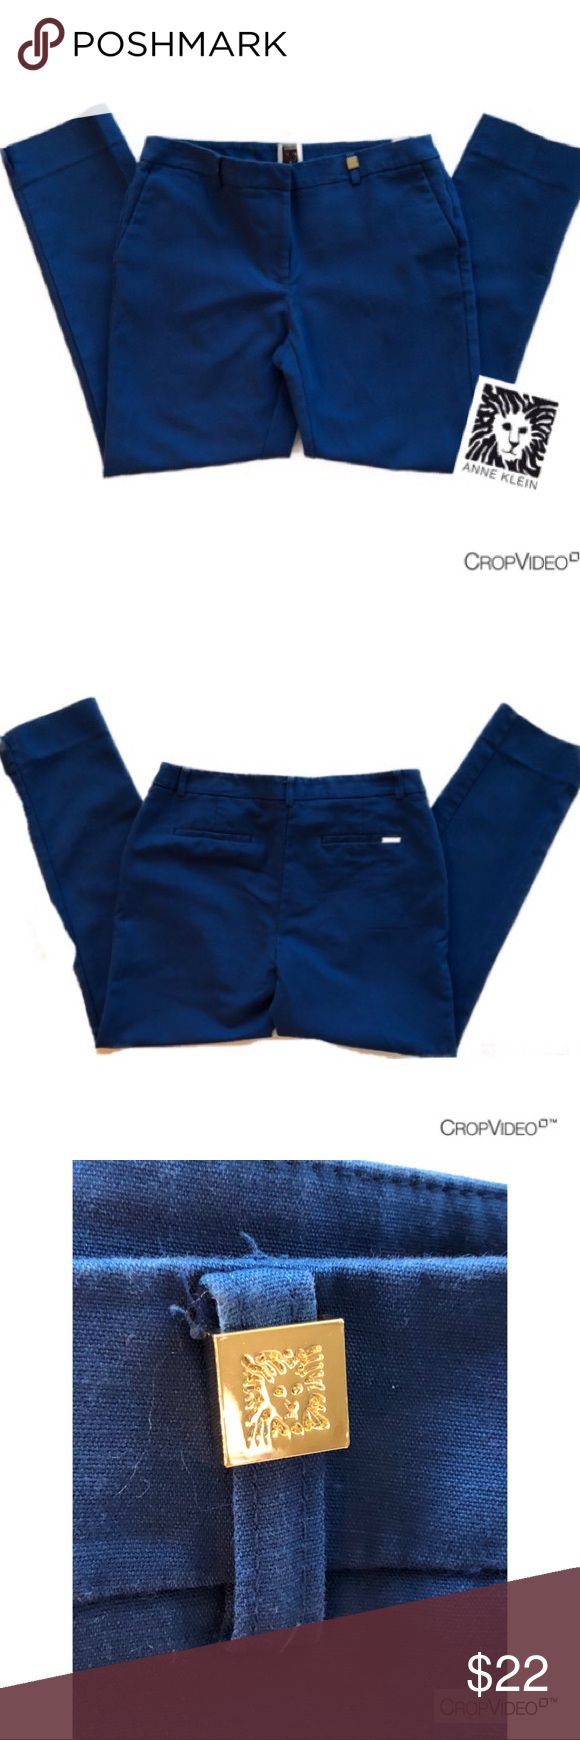 Anne Klein royal blue slim fit dress pants, size 4 Anne Klein royal blue slim fit ankle/ crop dress pants, size 4.  Excellent used condition Anne Klein Pants Ankle & Cropped